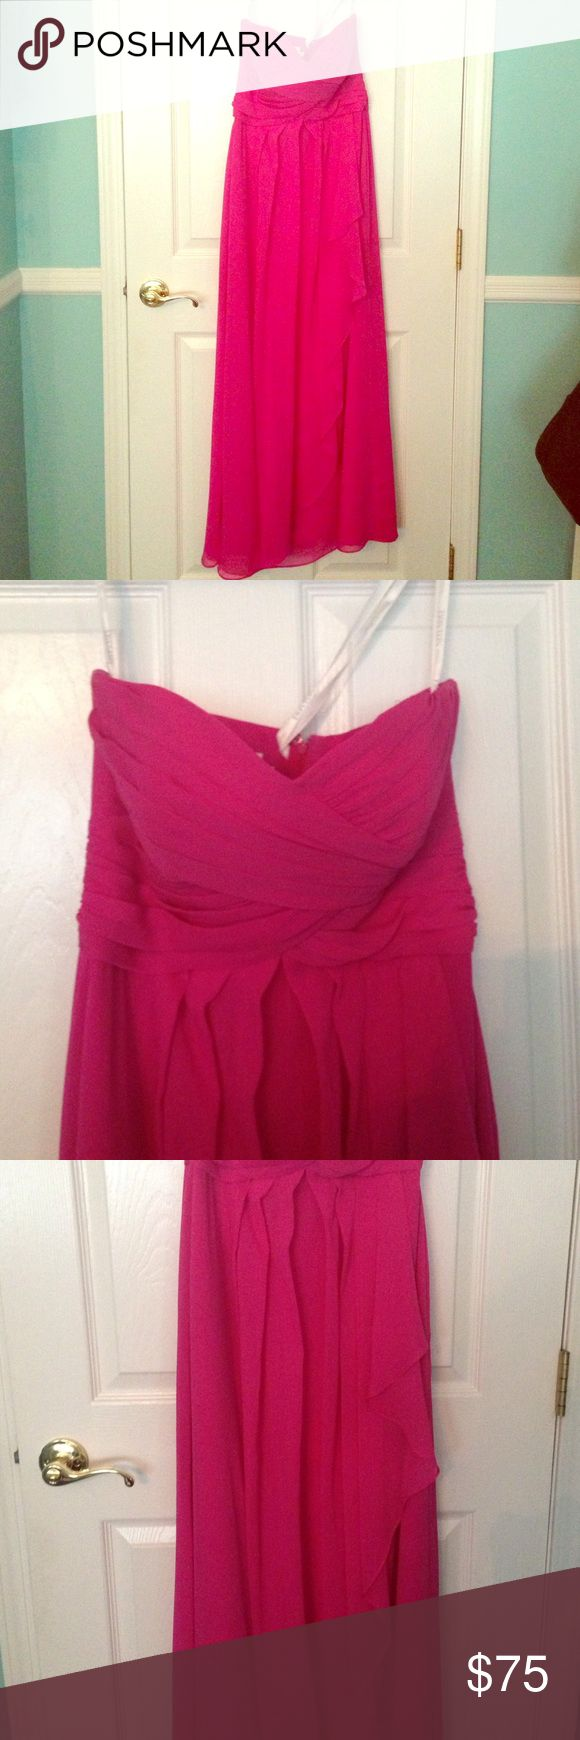 Bridesmaid Dress David's Bridal Bridesmaid Dress, their Begonia color, worn once. Was hemmed, I'm 5'1 and wore 3 inch heels with the dress. Also has cups sewn in it which could be cut out if needed. Super comfortable and in good condition! David's Bridal Dresses Strapless